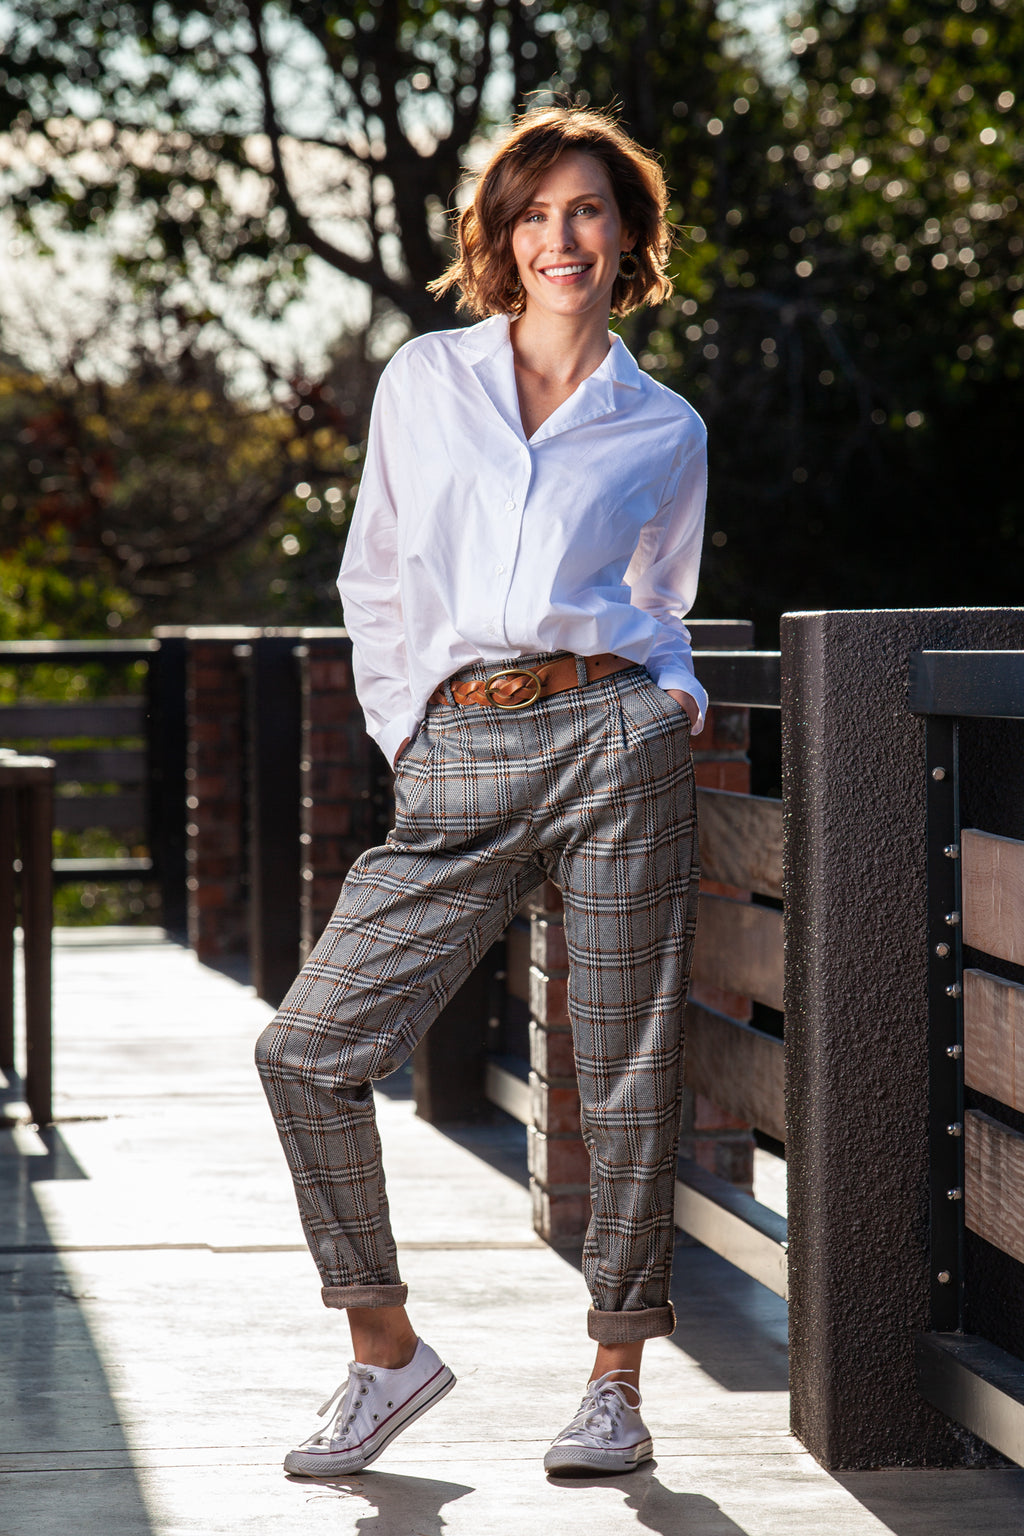 Charlie Pants - Hazel check OR Teal check